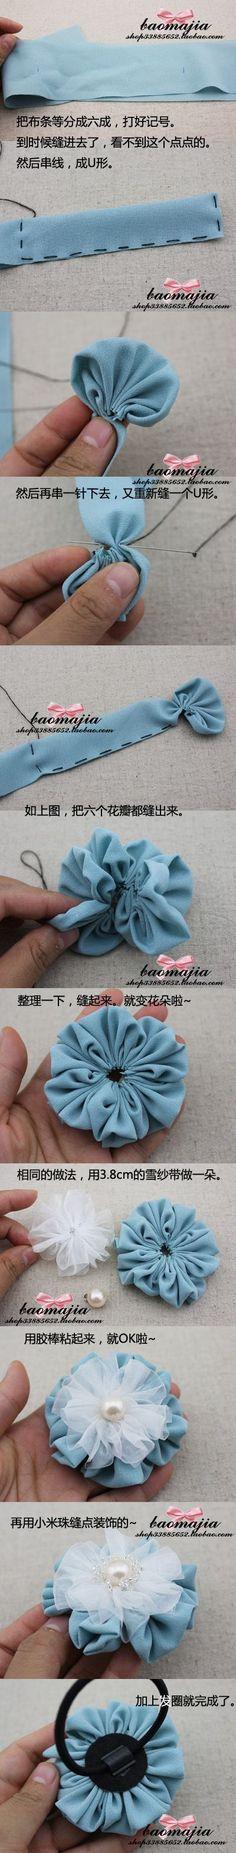 Fabulous way to make flower! Gonna try this sooner, LOVE IT!